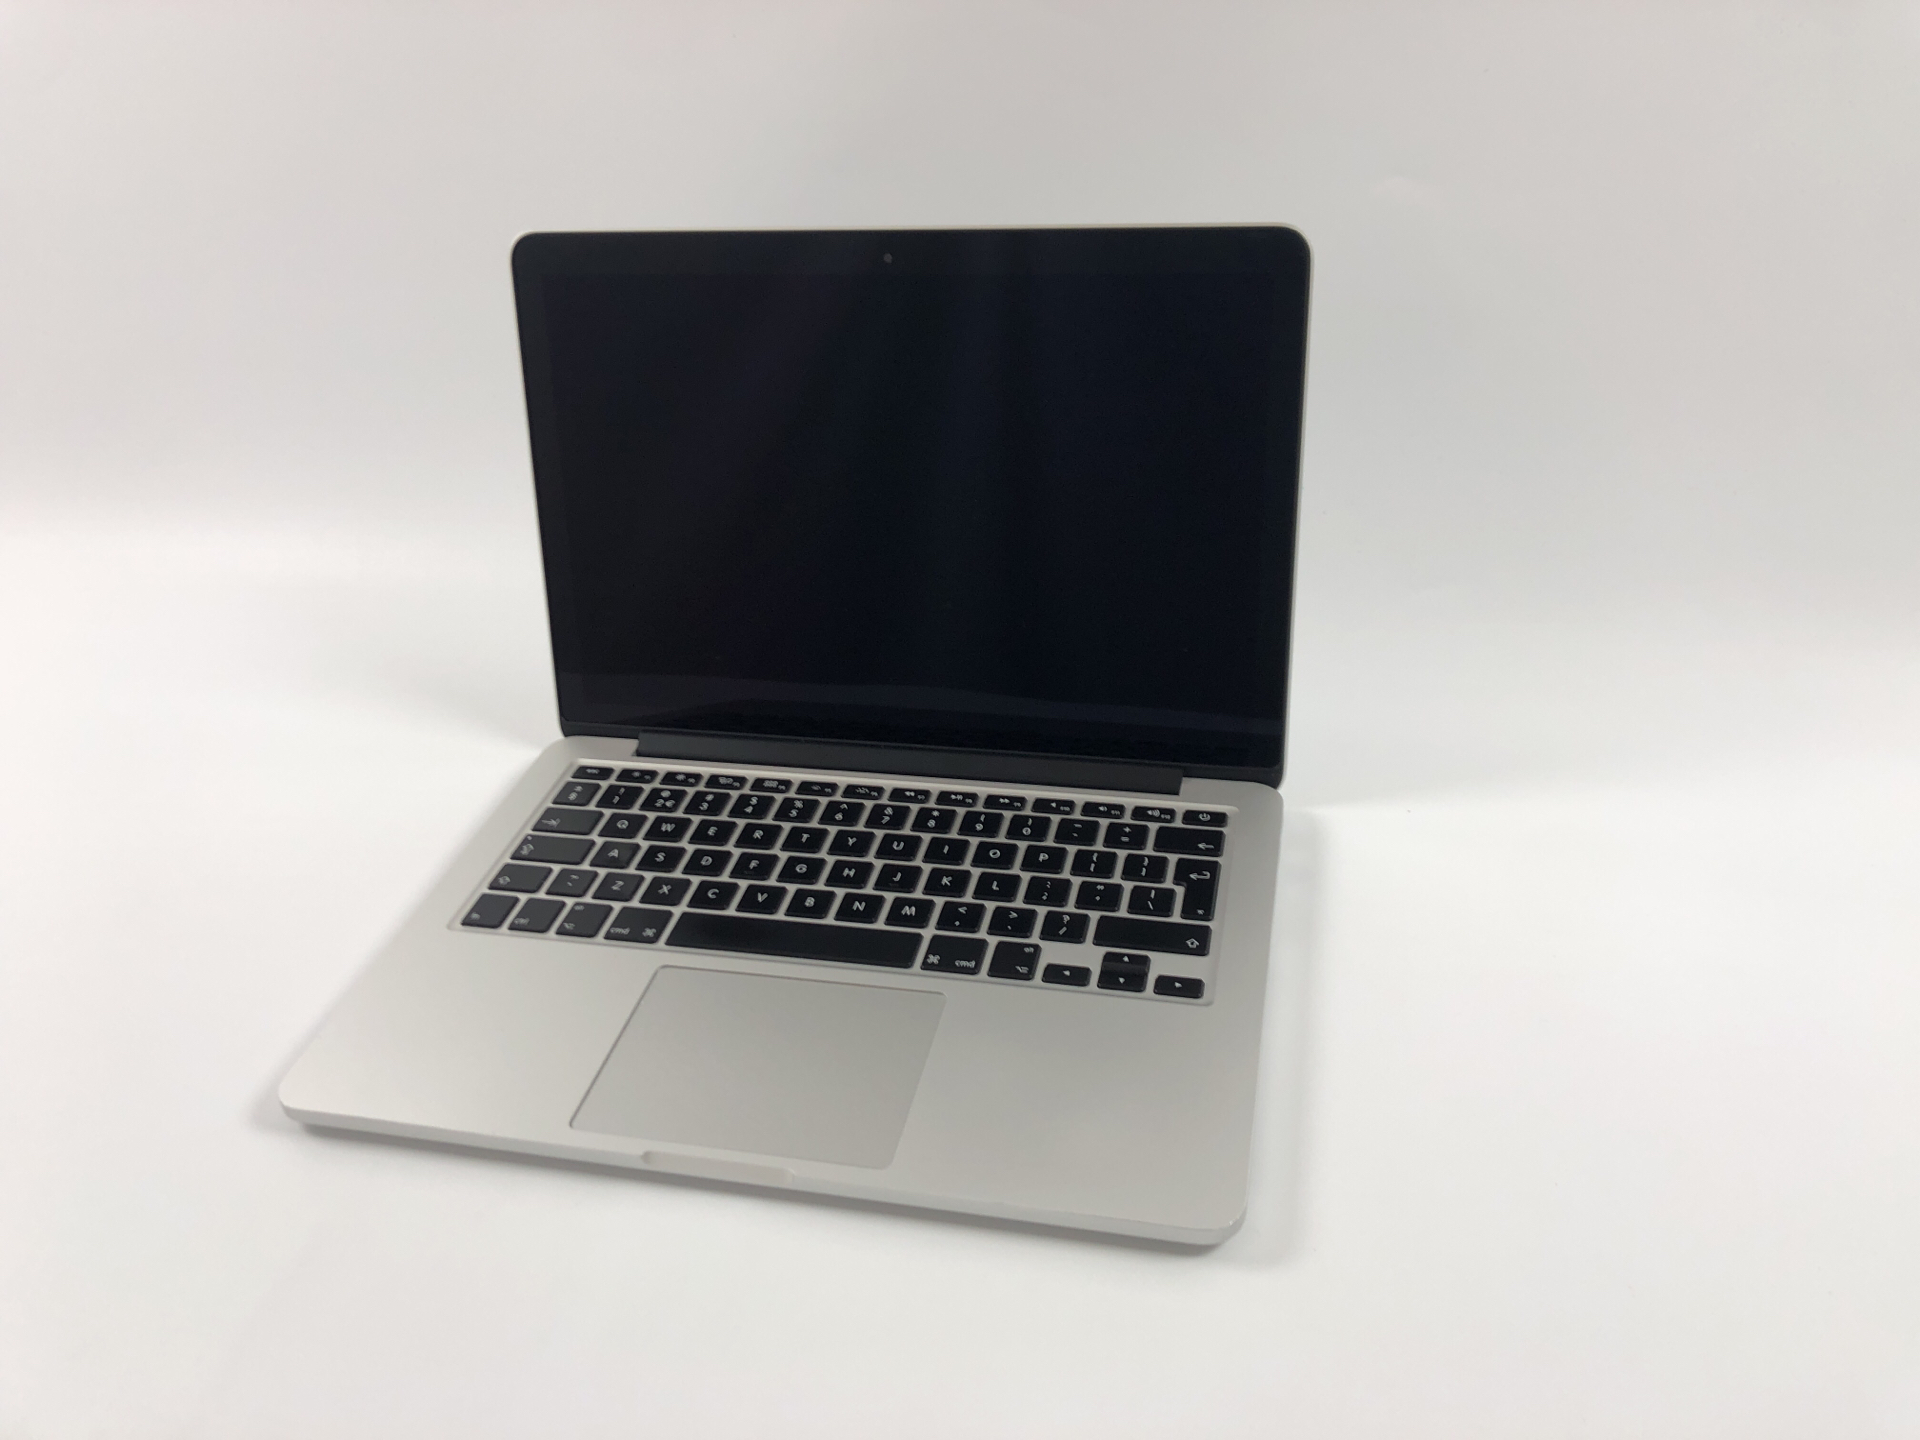 "MacBook Pro Retina 13"" Mid 2014 (Intel Core i5 2.6 GHz 8 GB RAM 256 GB SSD), Intel Core i5 2.6 GHz, 8 GB RAM, 256 GB SSD, bild 1"